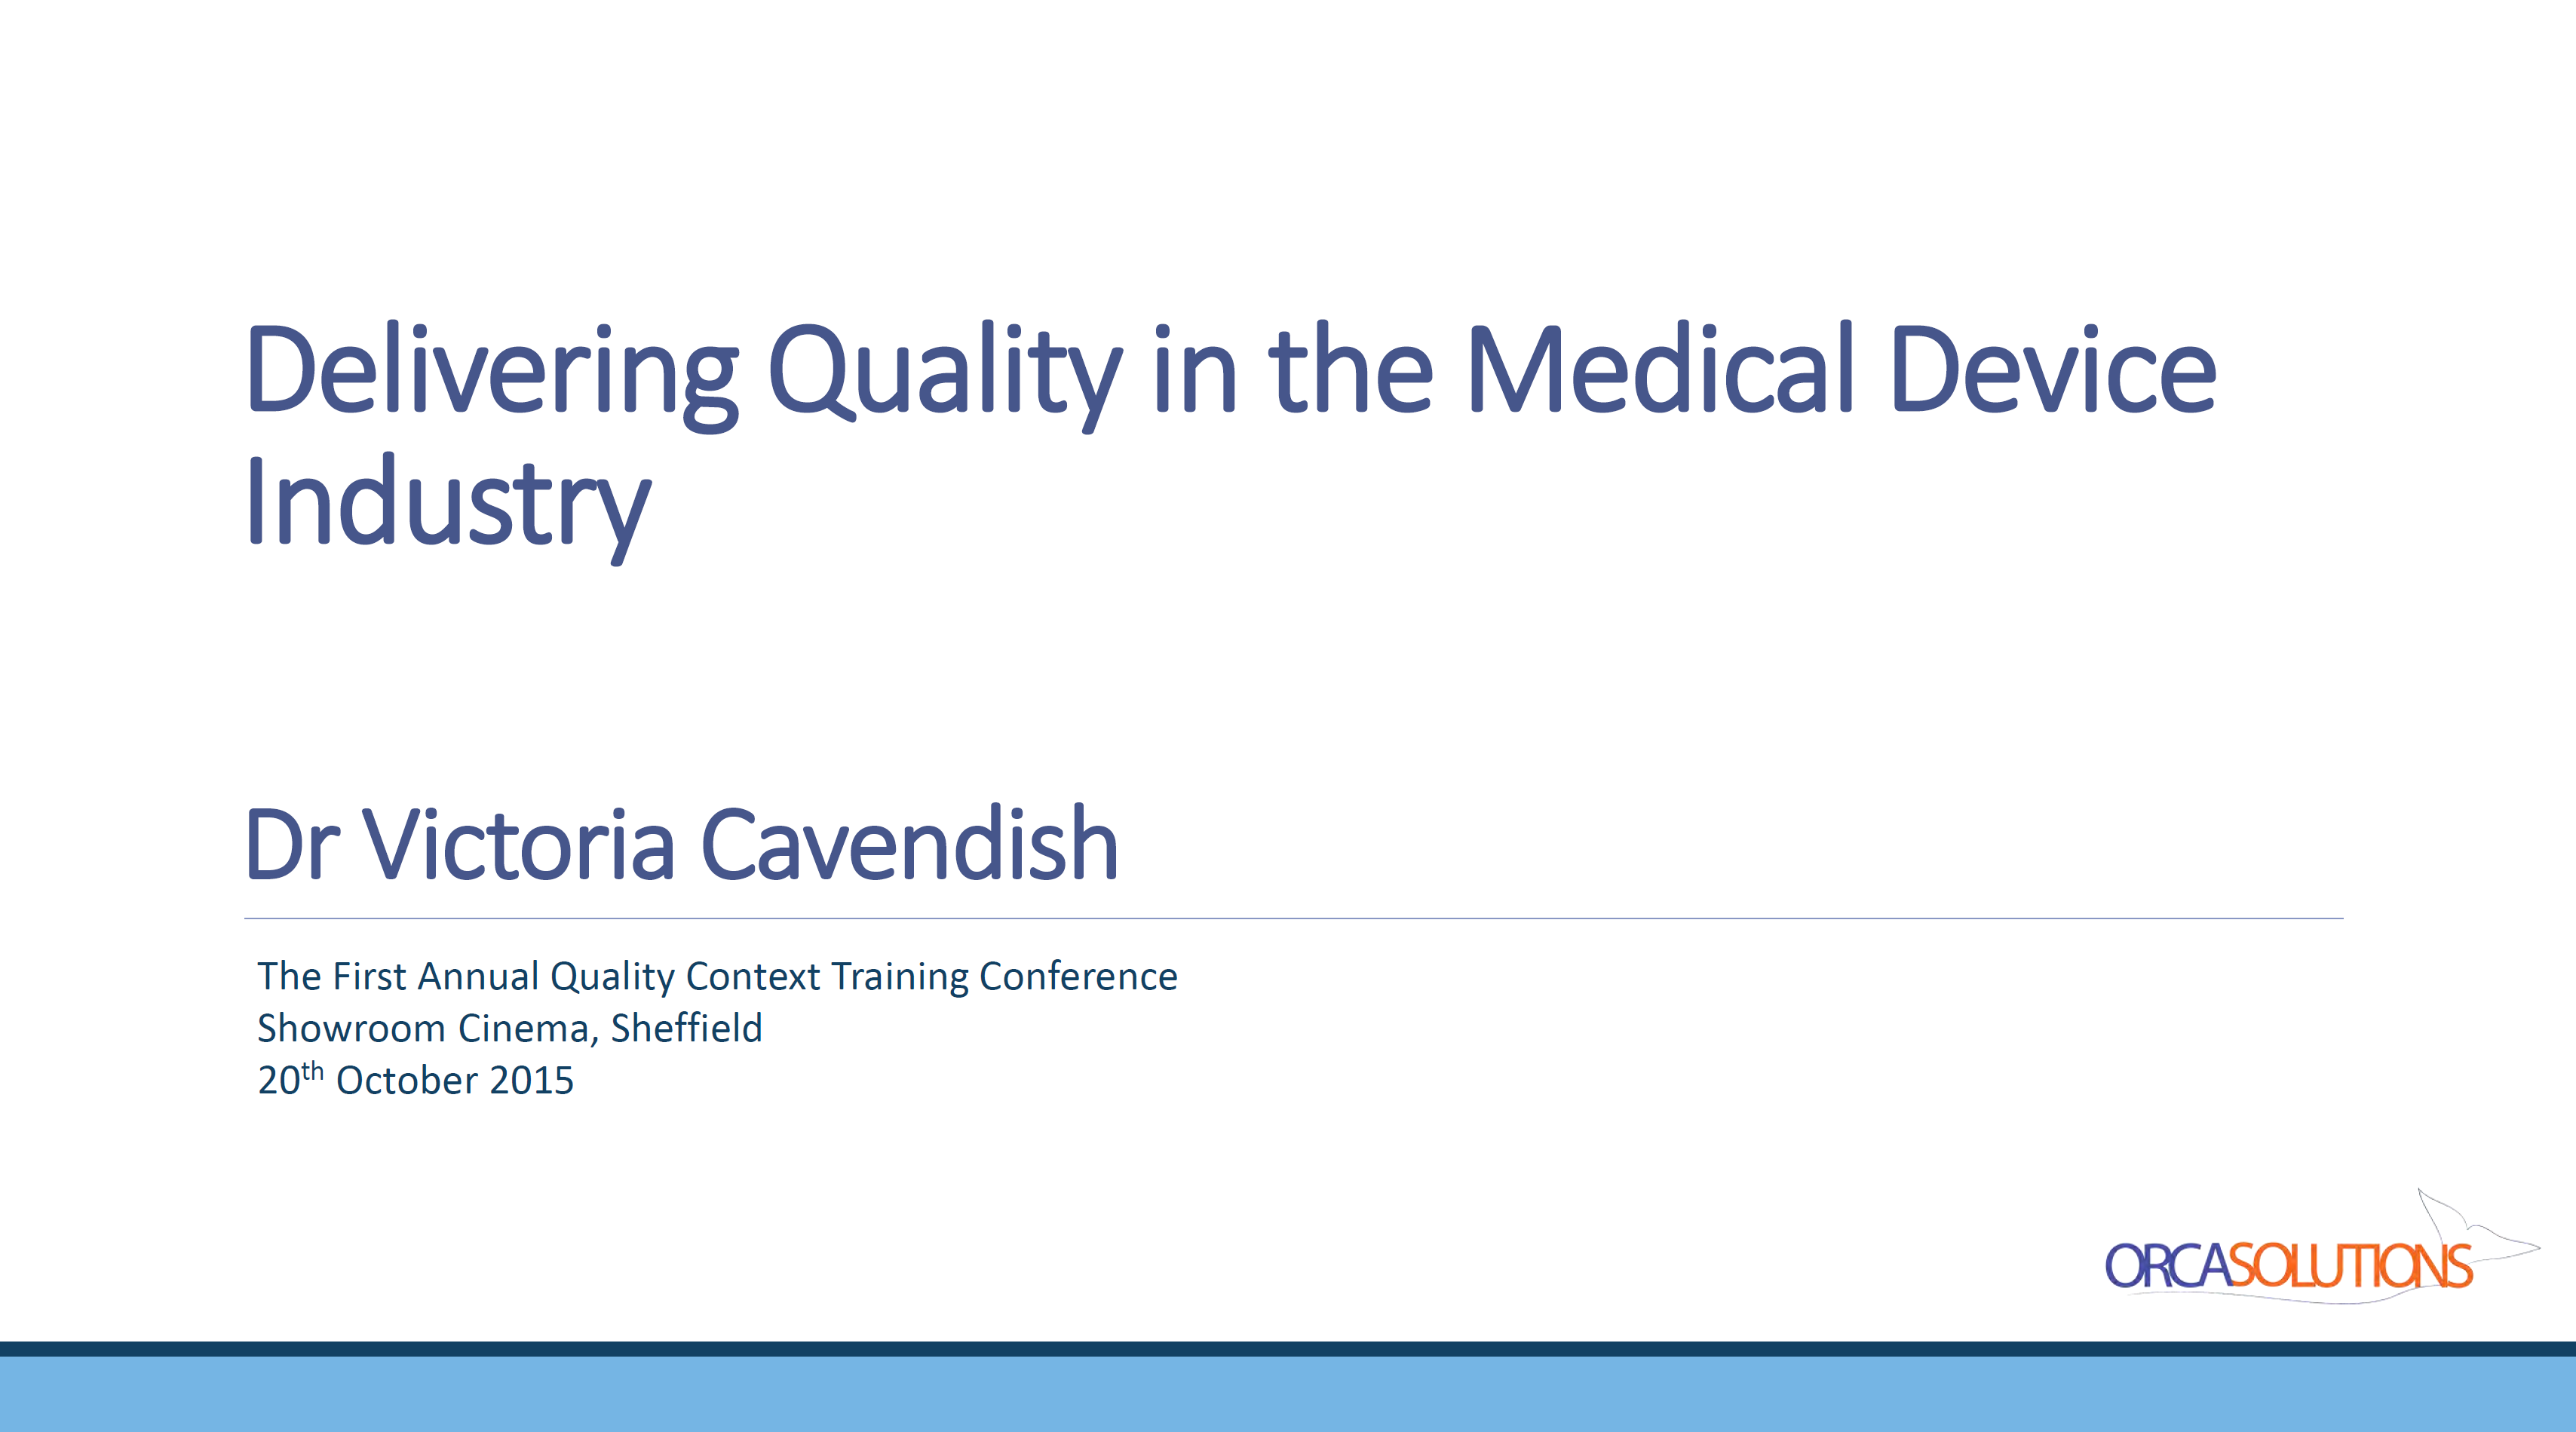 Delivering_Quality_in_the_Medical_Device_Industry.png